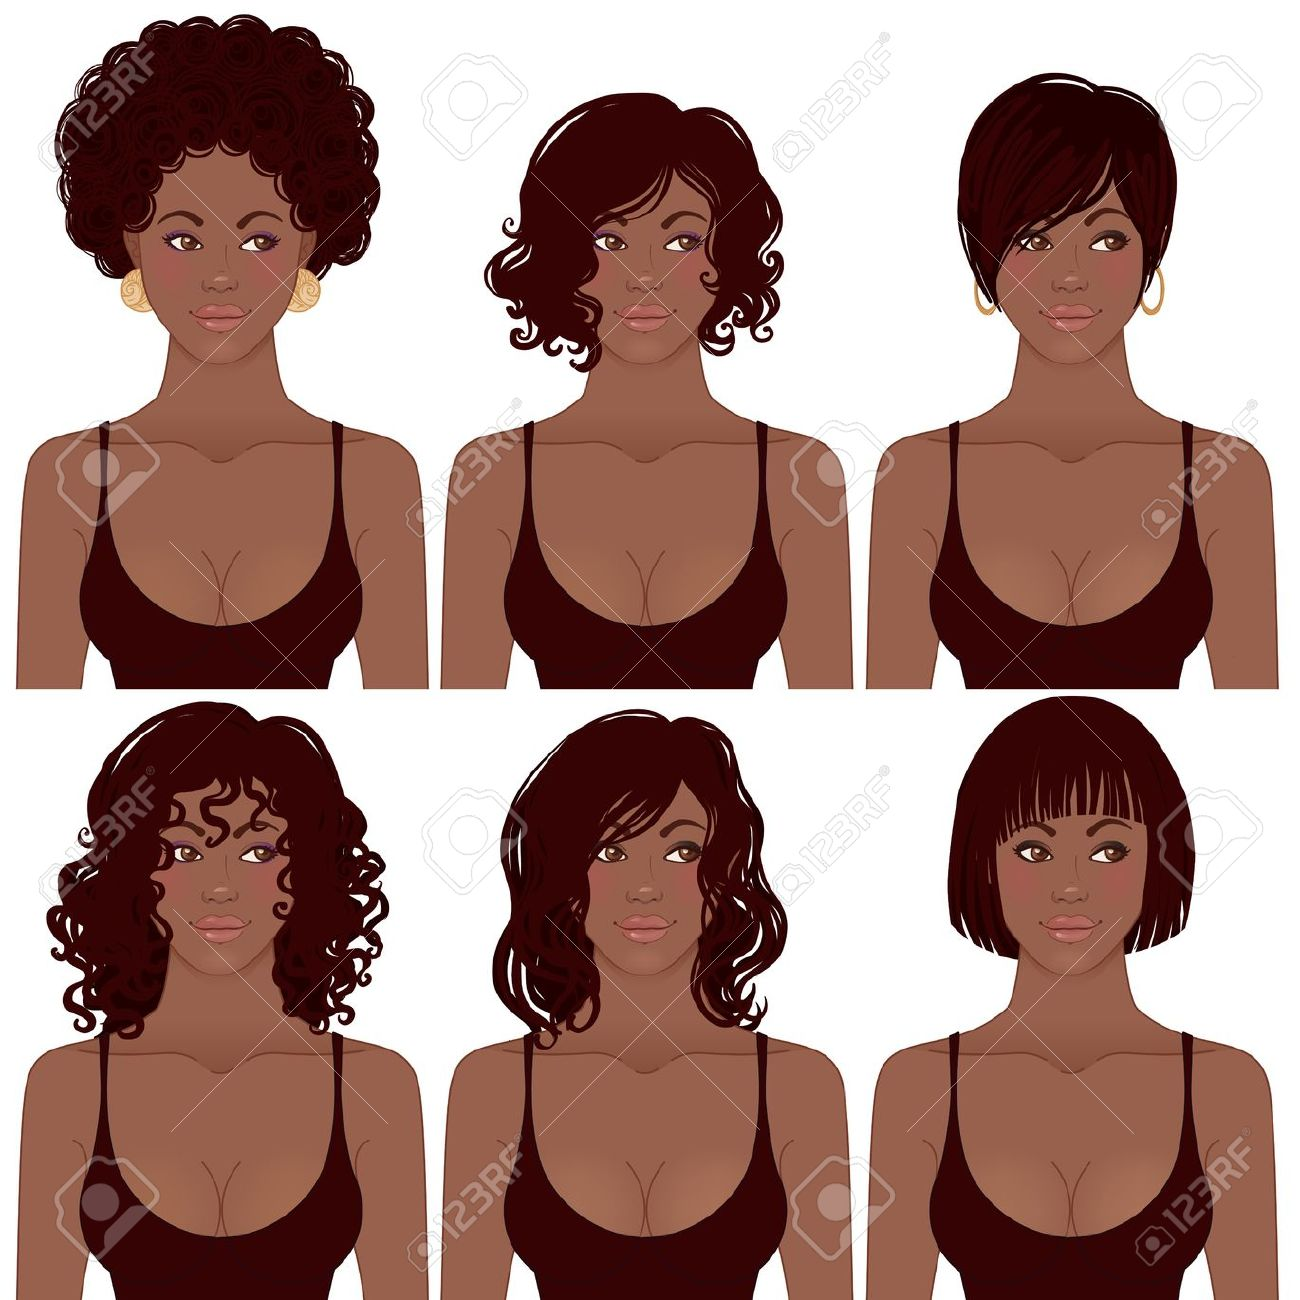 Woman clipart black hair Vector Pin Find For this